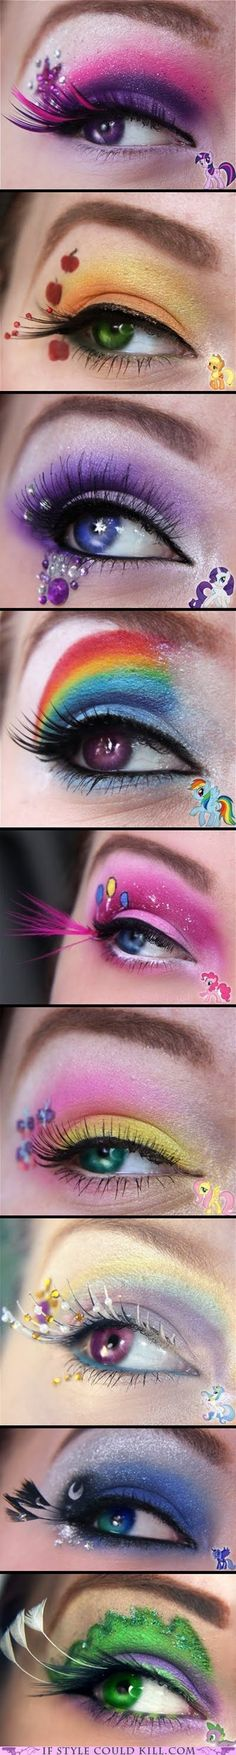 my little pony makeup by Talulah